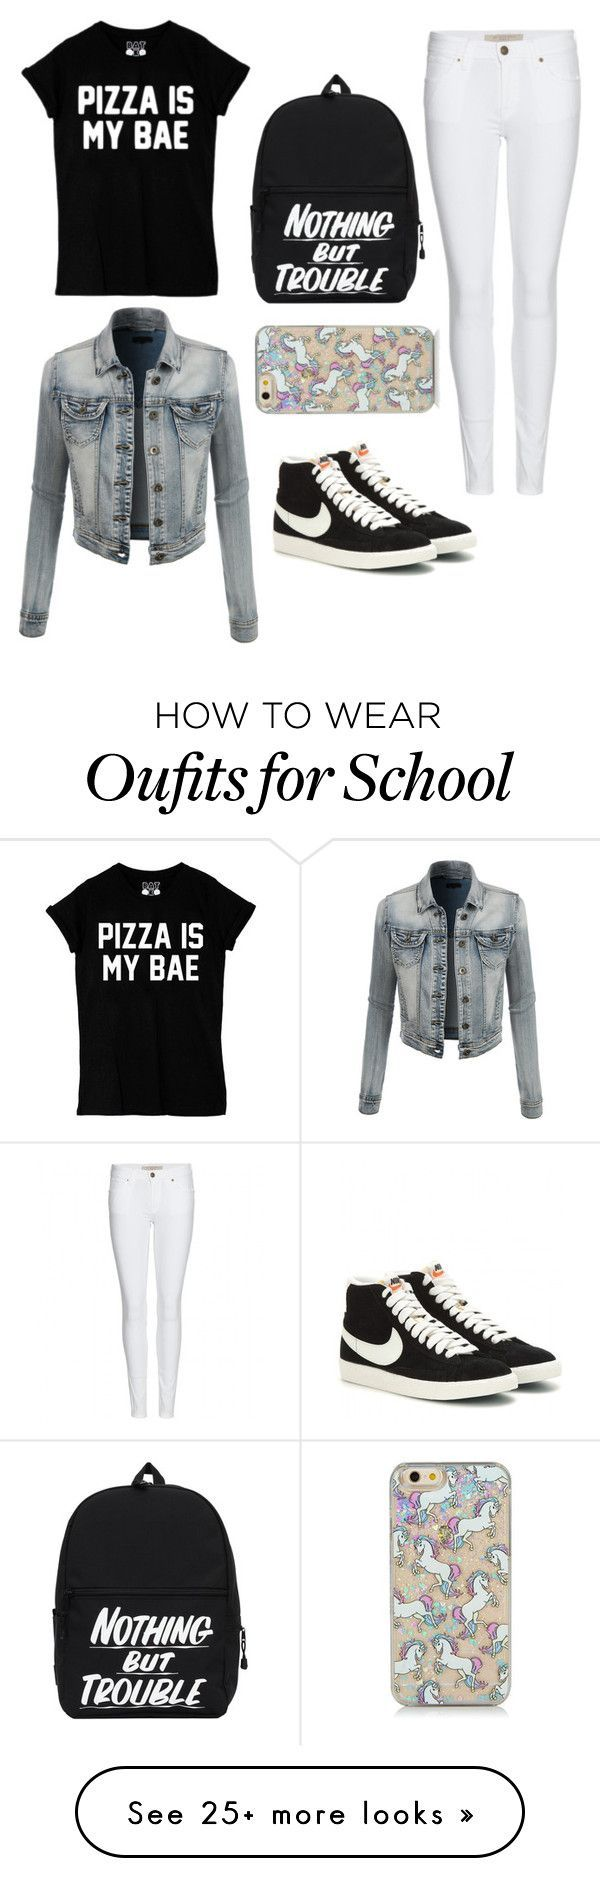 """School"" by aprilgals on Polyvore featuring LE3NO, Burberry and NIKE"